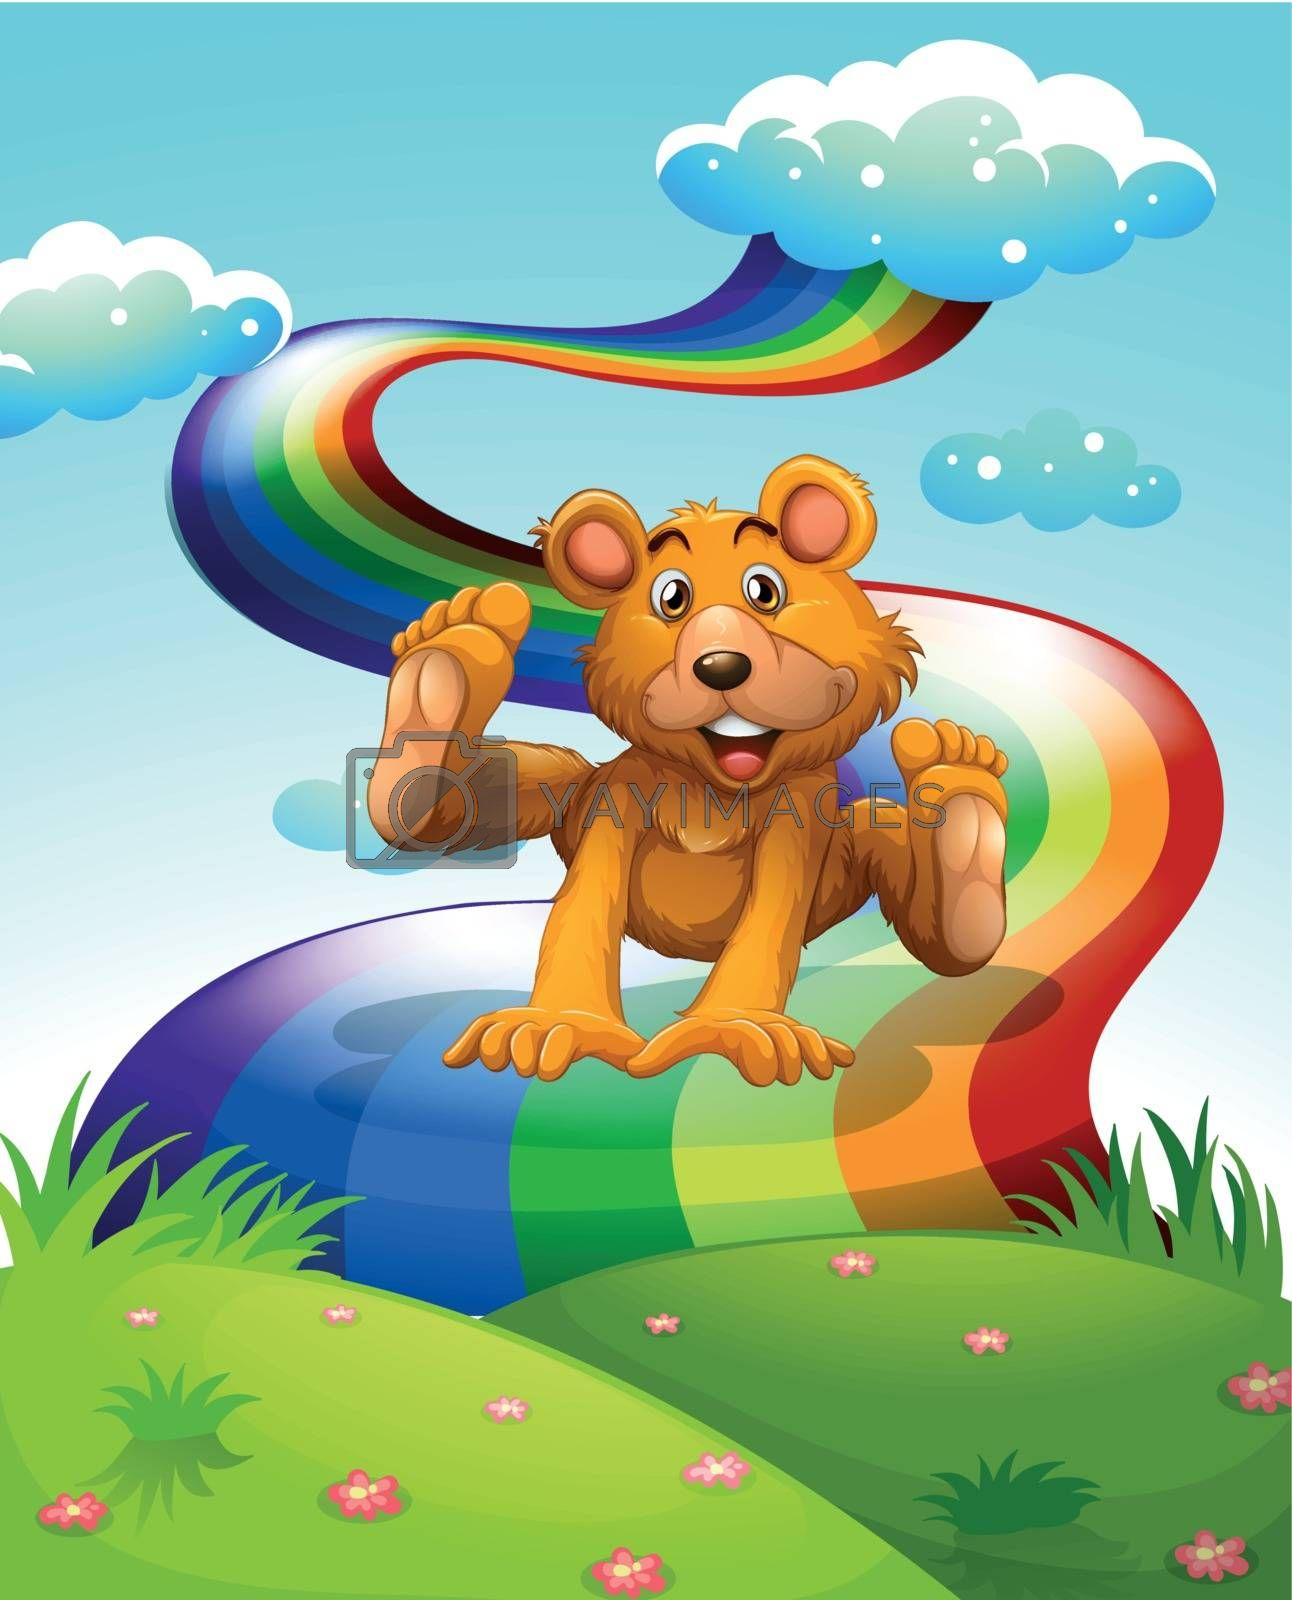 Illustration of a playful brown bear jumping near the rainbow